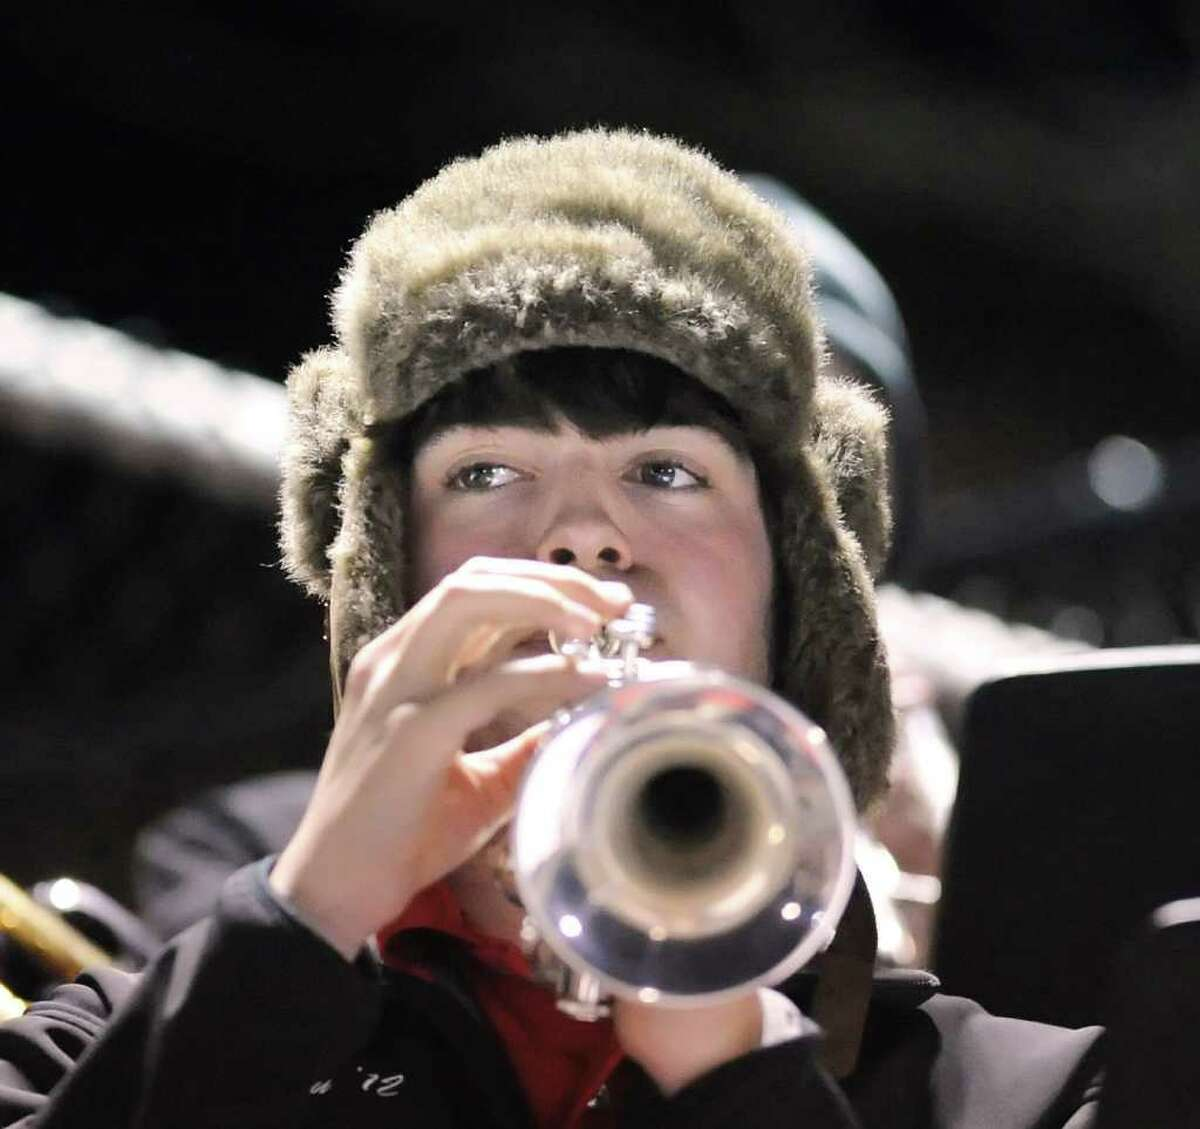 Ben Granath of the New Canaan High School pep band plays the trumpet during the High School football game between Greenwich High School vs. New Canaan High School at New Canaan High School, Friday night, Nov. 5, 2010.